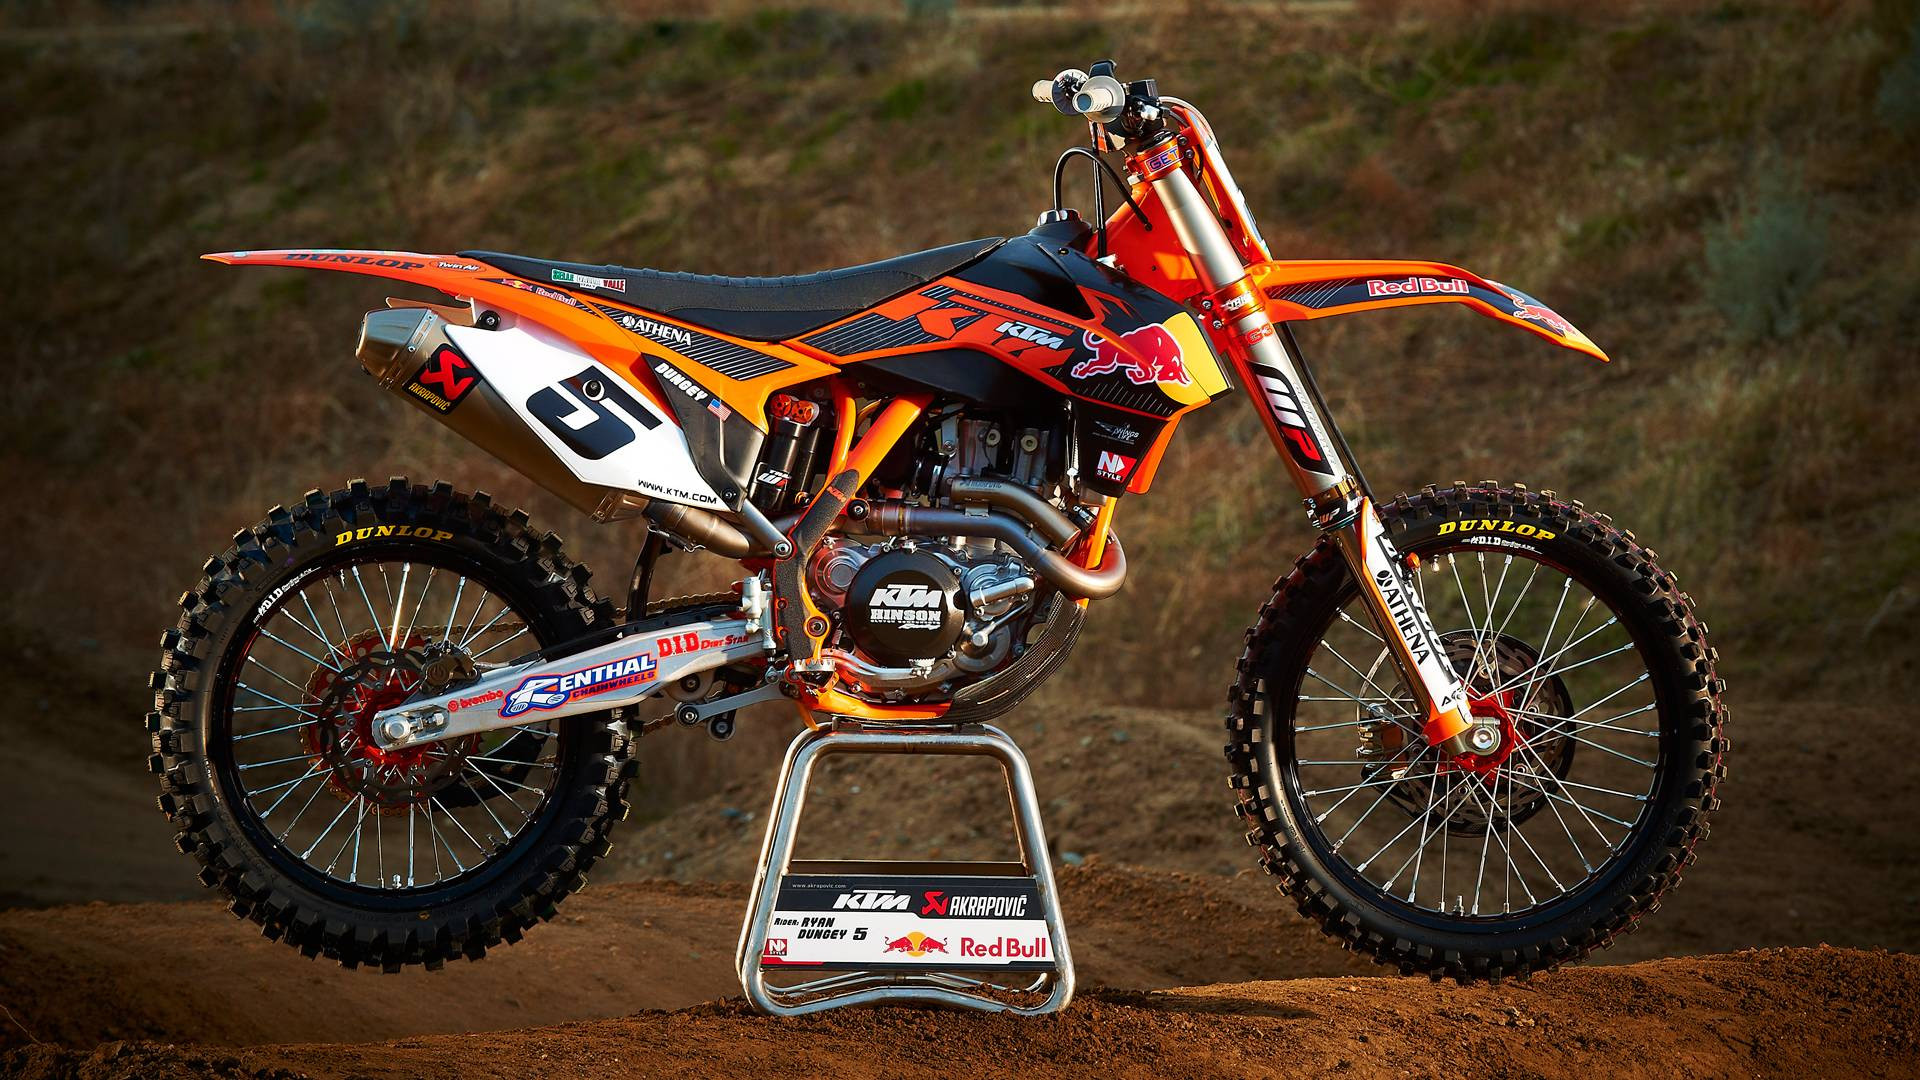 1920x1080 Wallpapers Motocross Ktm Wallpaper Cave dedans Photo De Moto Cross Ktm